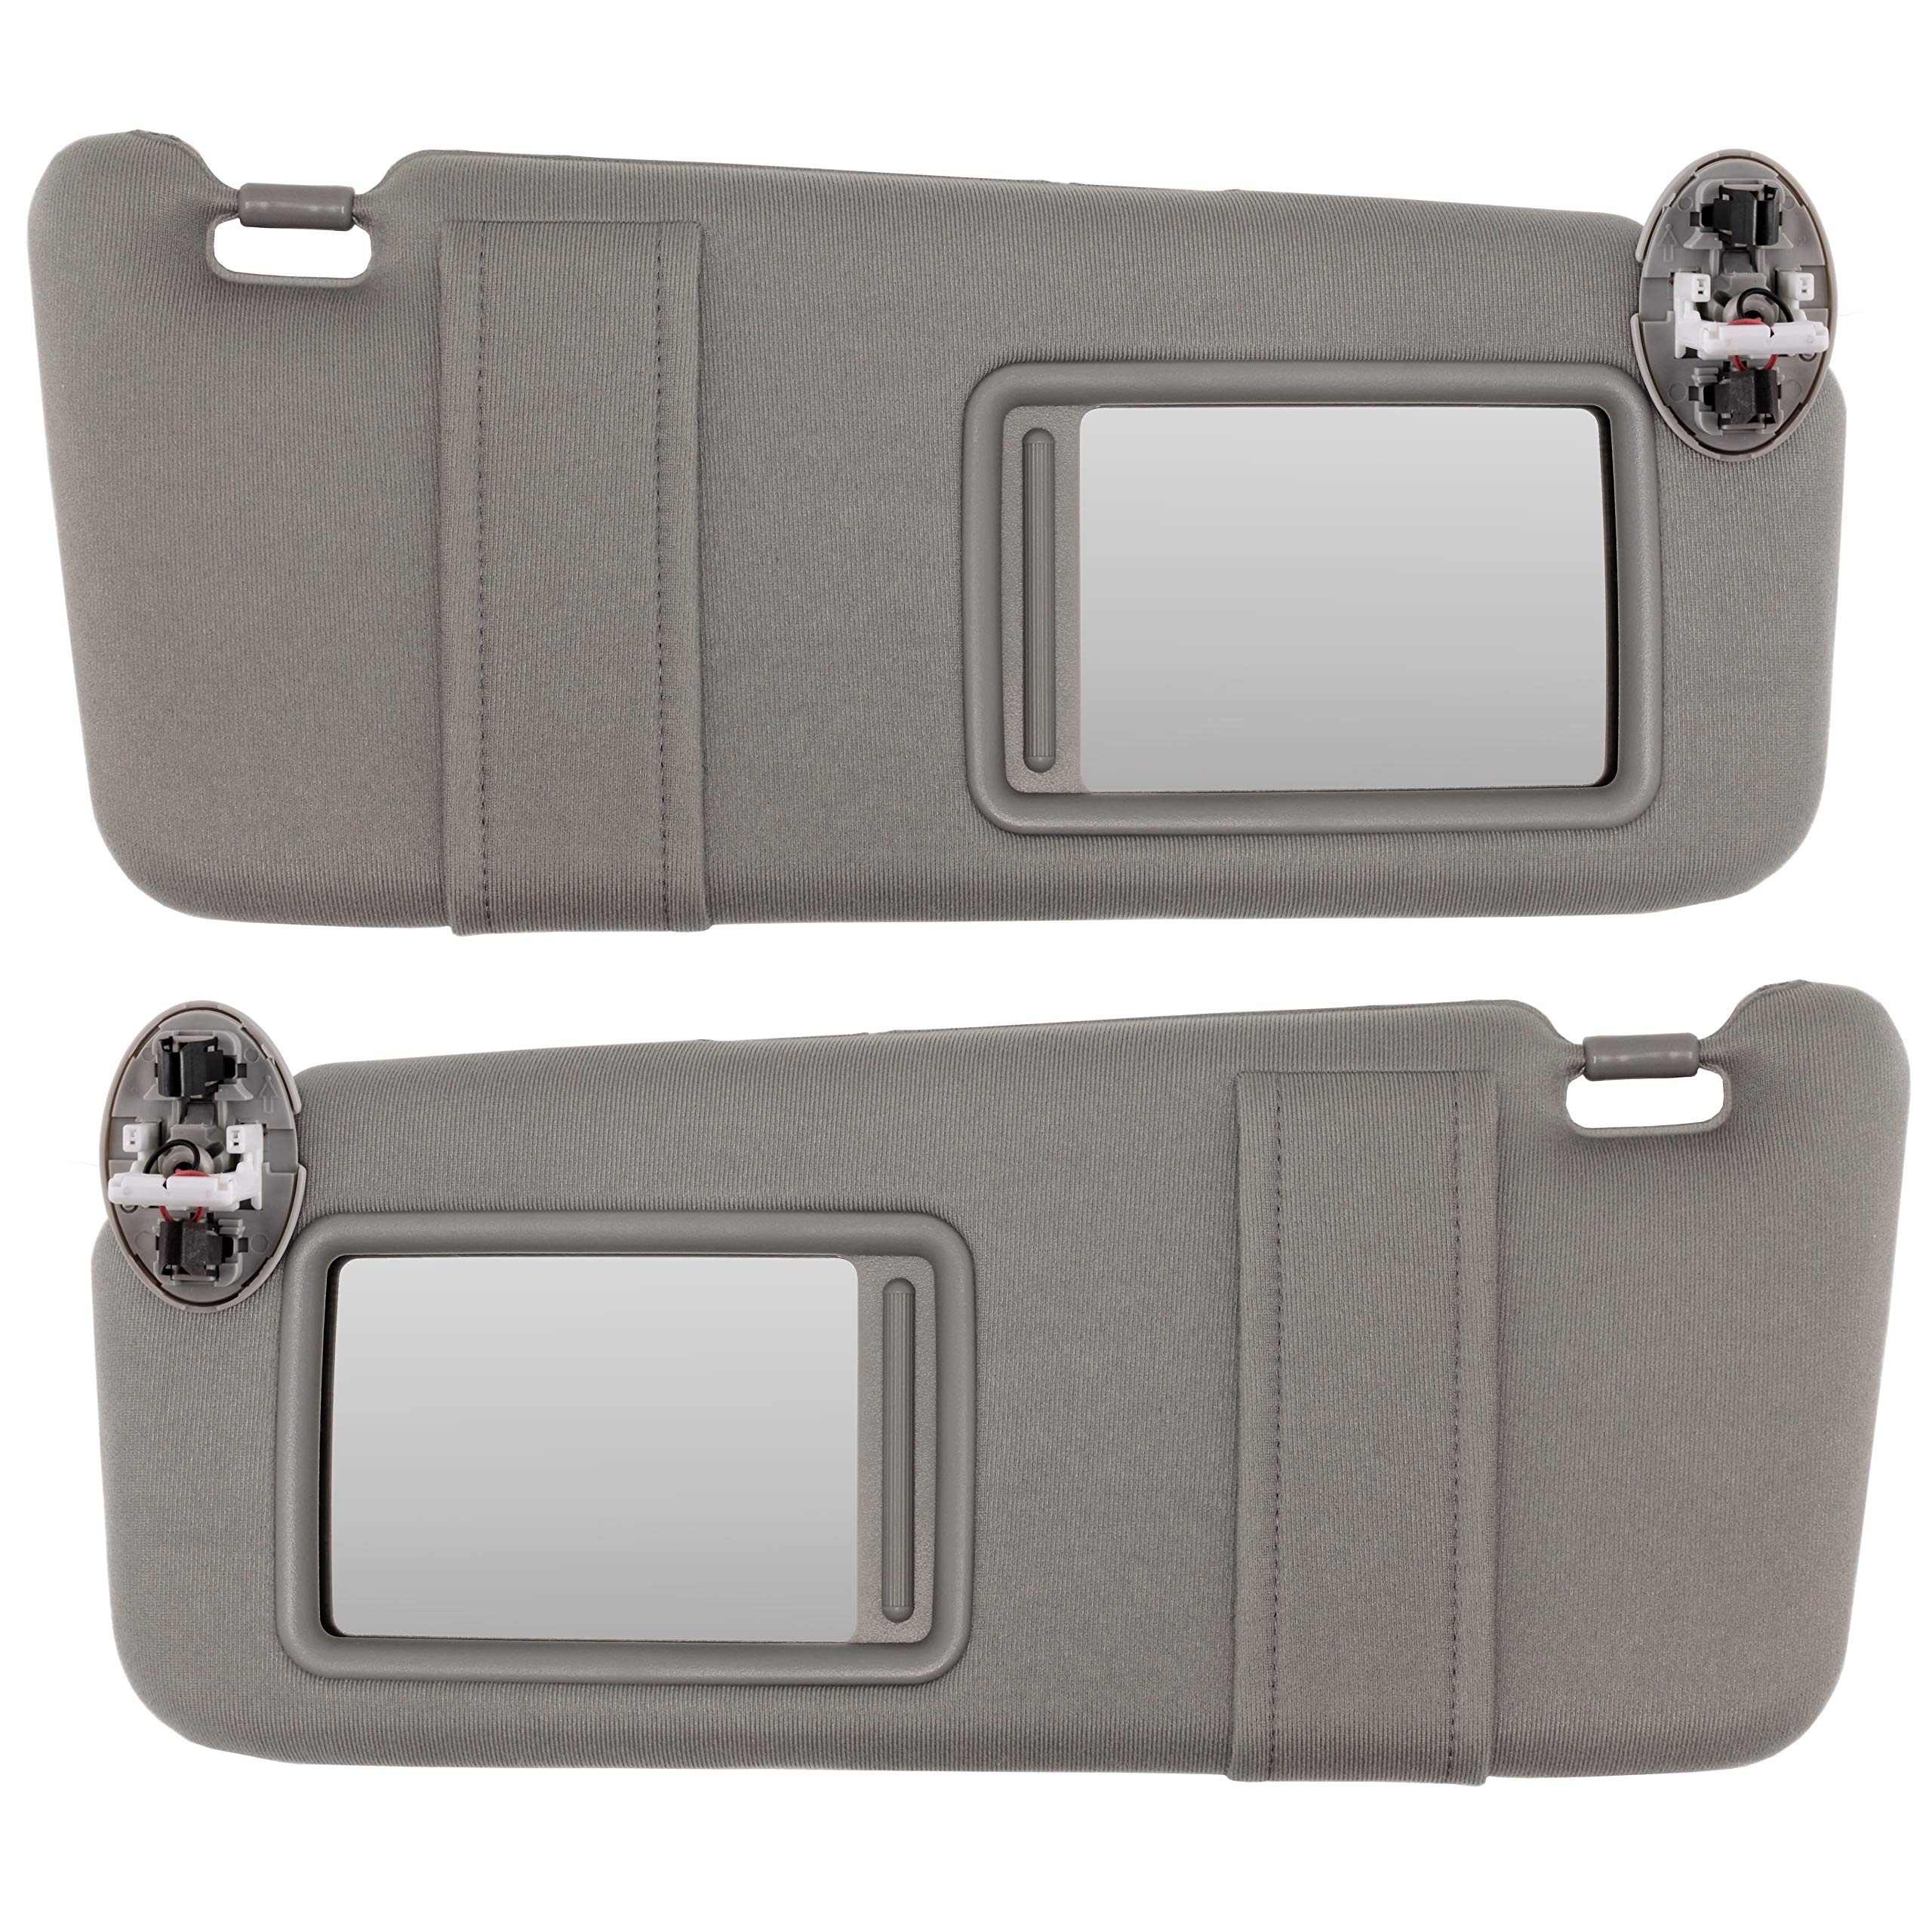 IAMAUTO 80922 New Sun Visor Left and Right Gray Pair for 2007-2011 Toyota Camry with Sunroof and Vanity Light in Ceiling (Set of Driver and Passenger Side Visors)